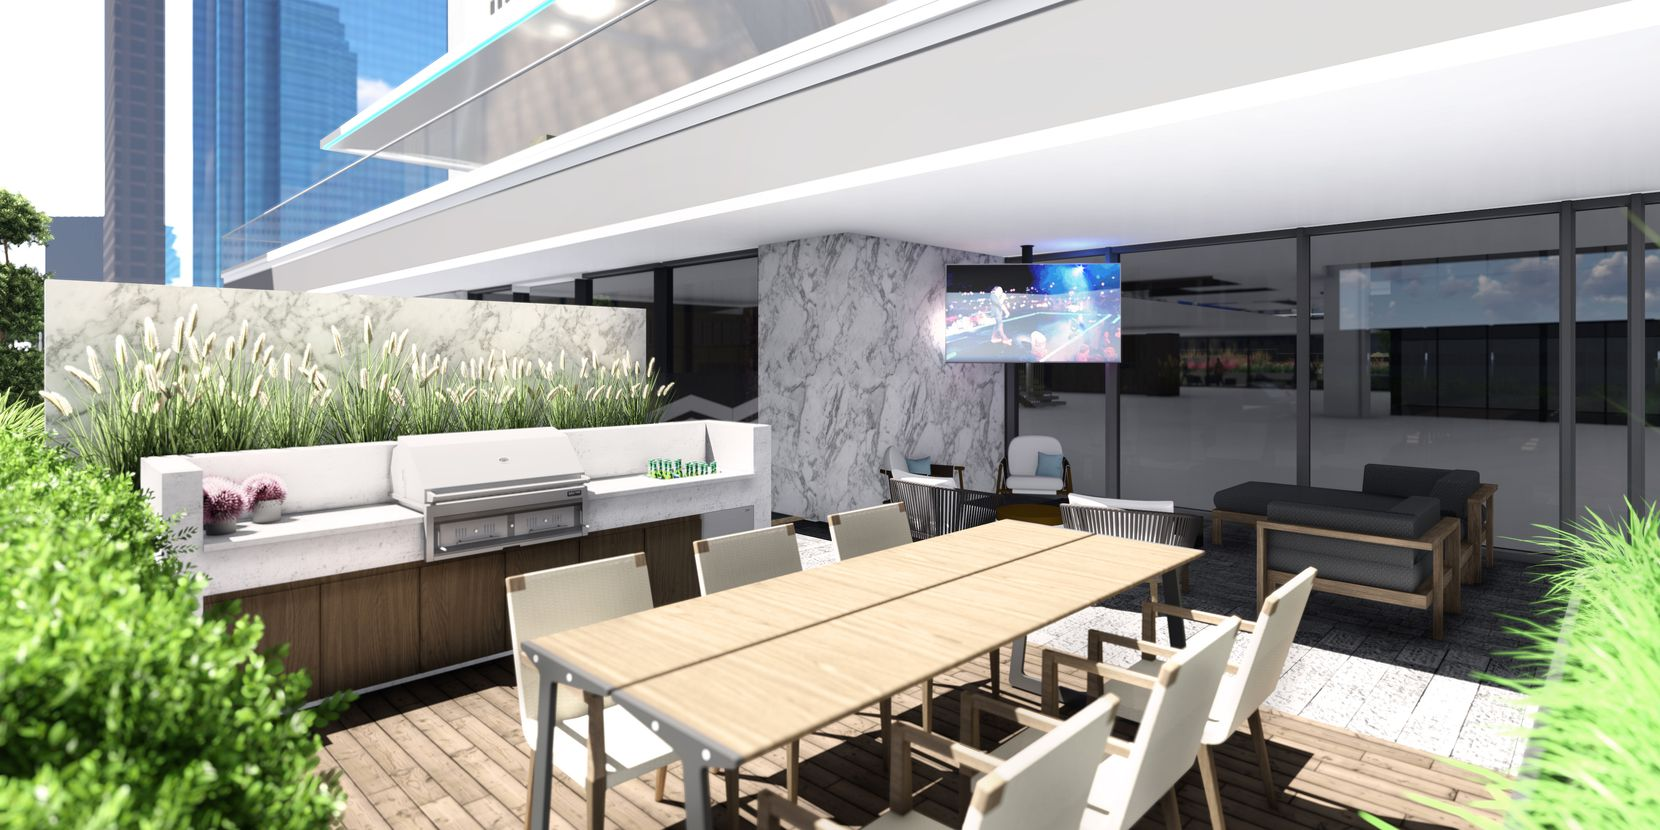 A dining area on the ninth floor deck at The Drever.